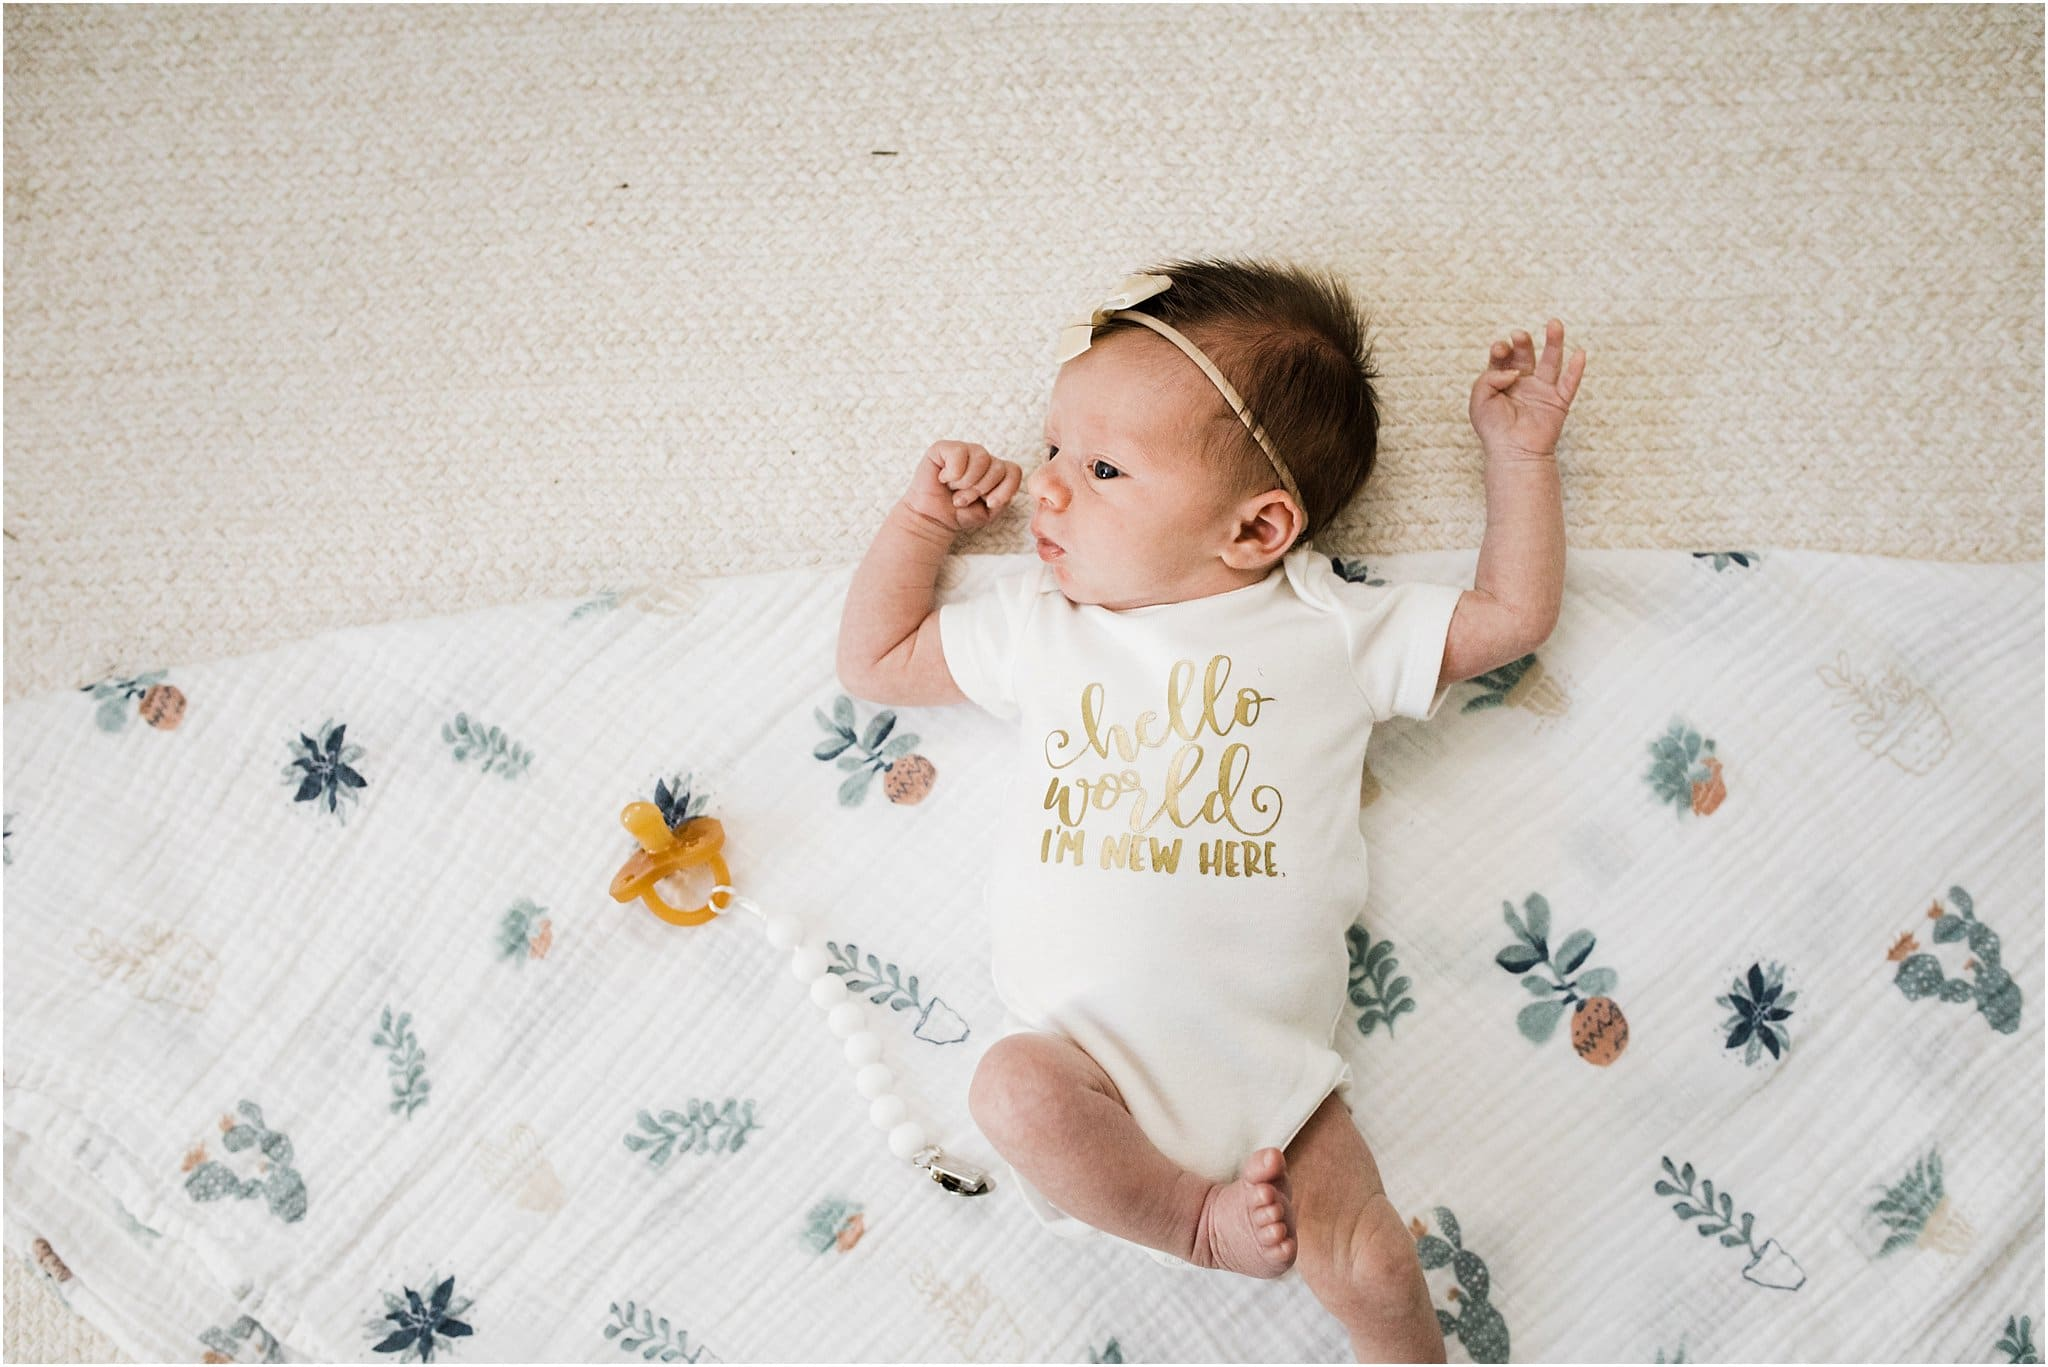 newborn baby girl laying on floral swaddle wearing i'm new here onesie